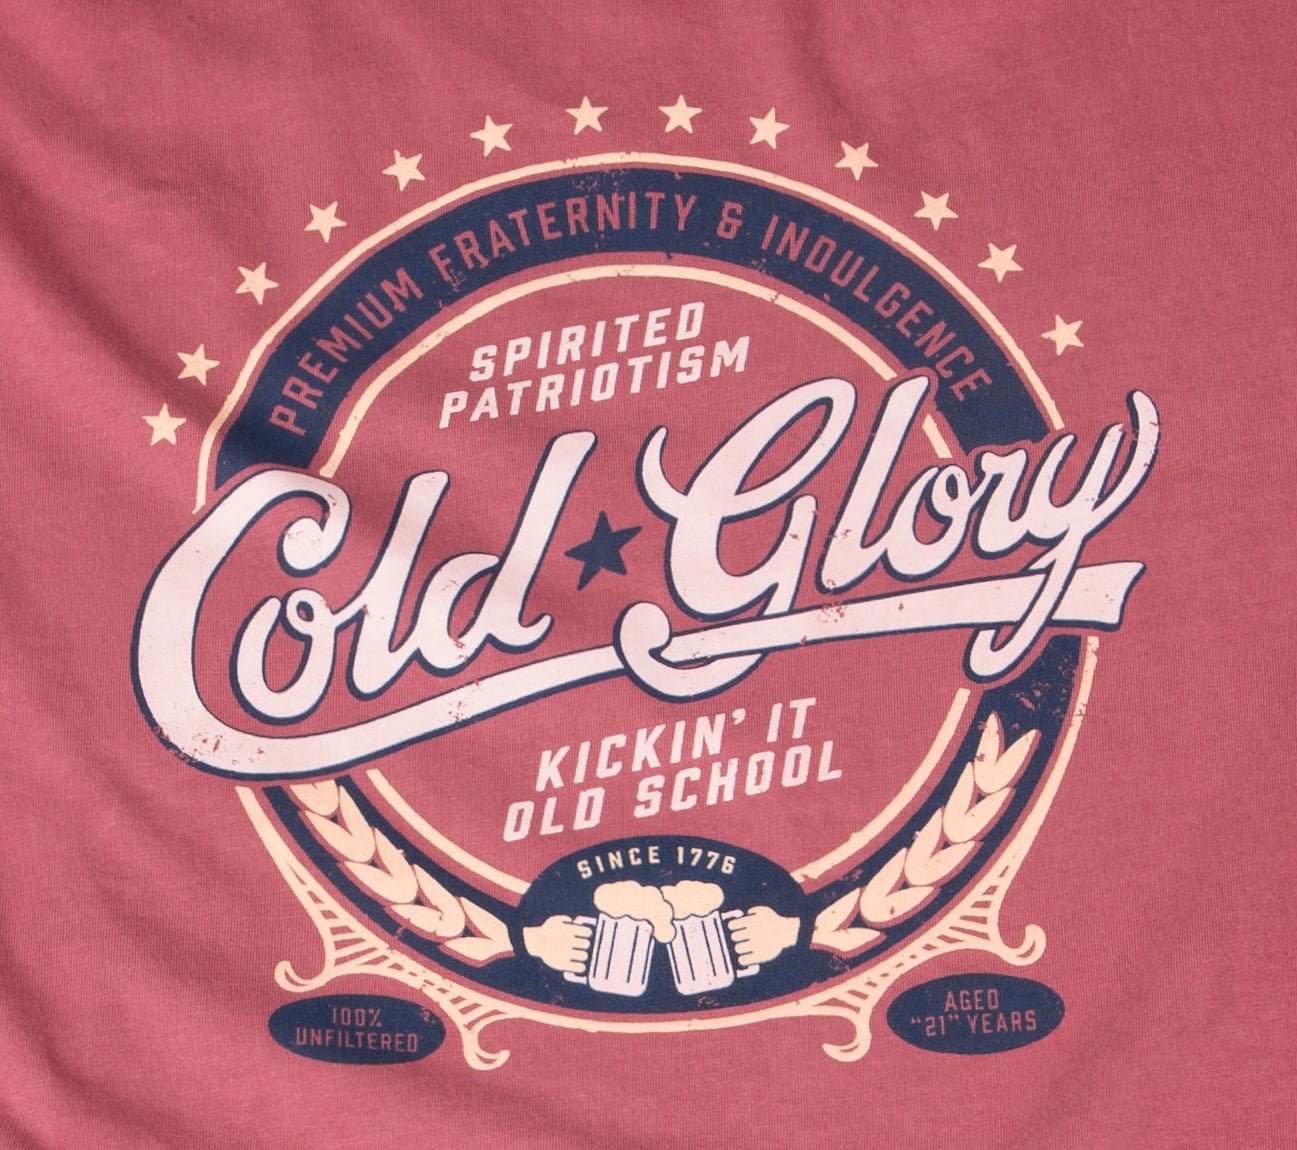 Close-up of vintage red t-shirt showing spirited patriotism, fraternity and indulgence beer label design for the Cold Glory Brand Circle design with stars and beer mugs toasting